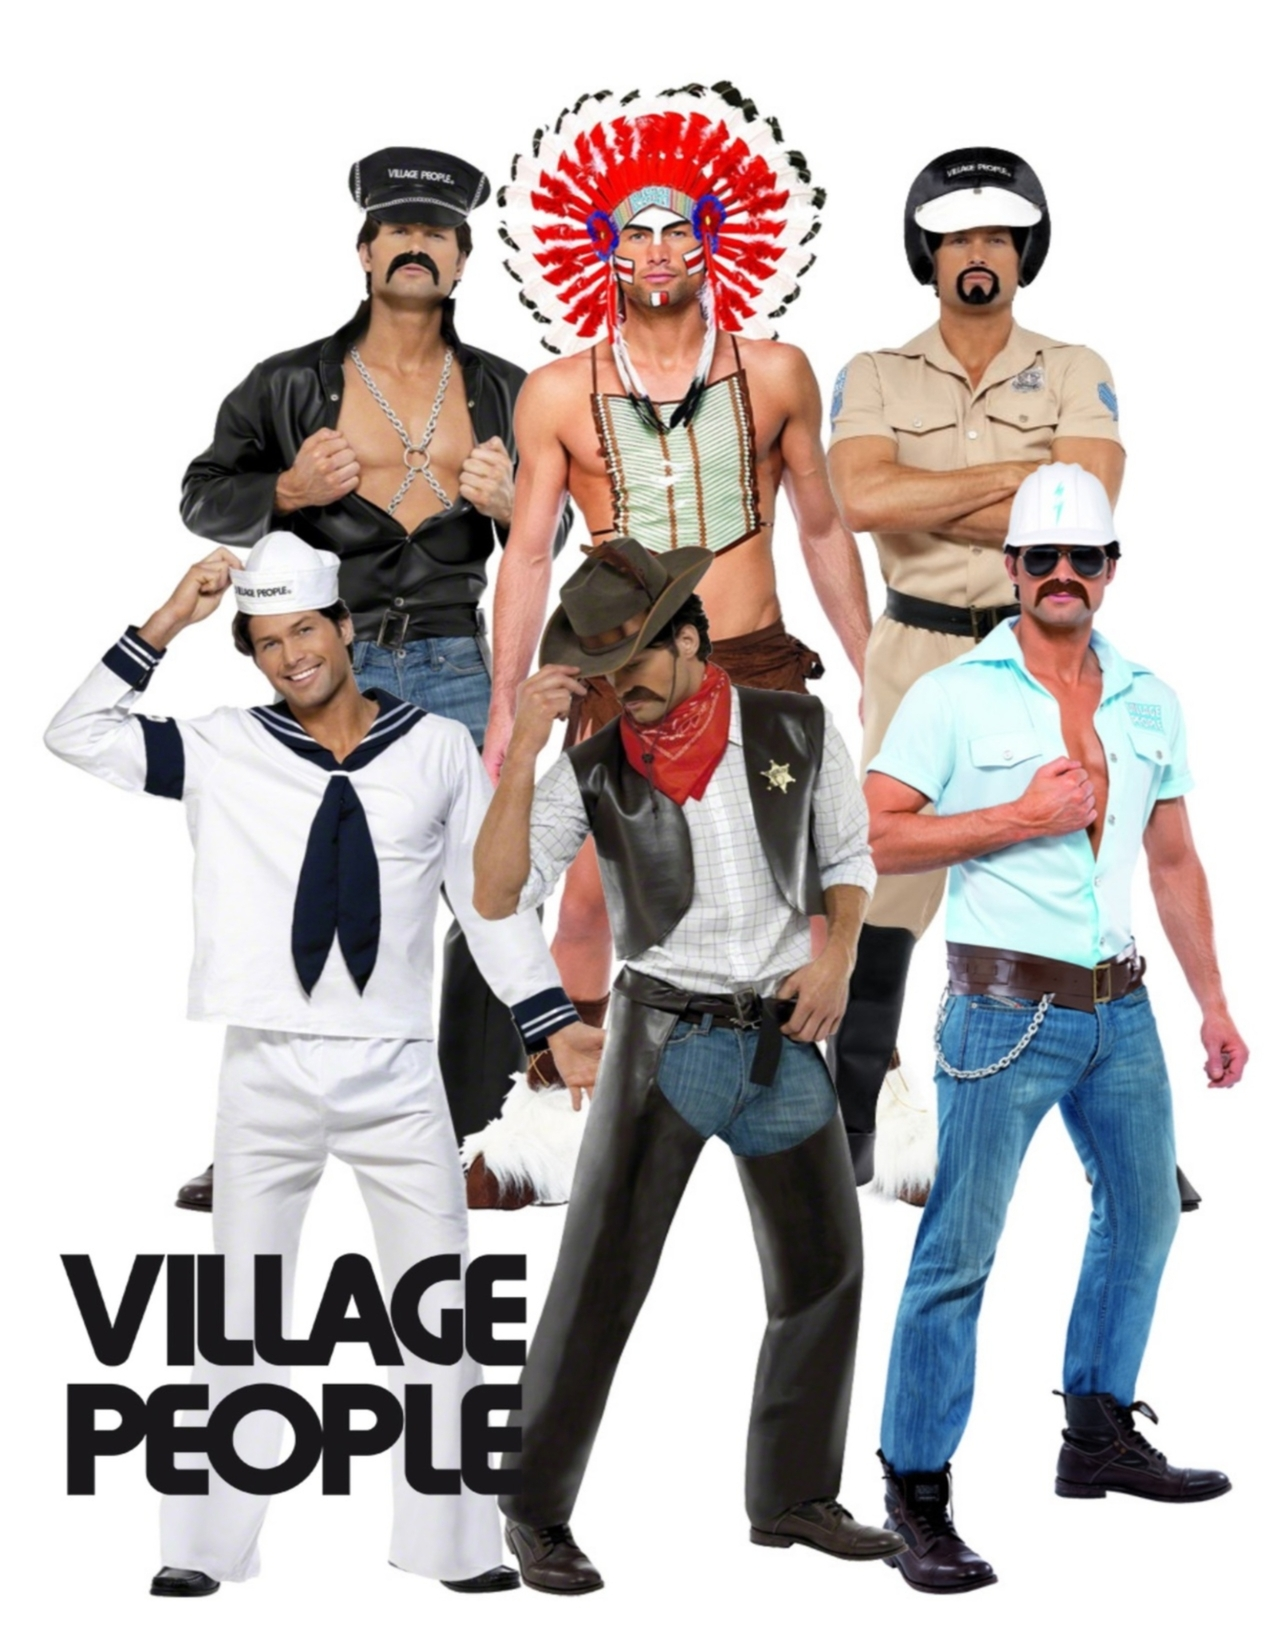 Village people 2